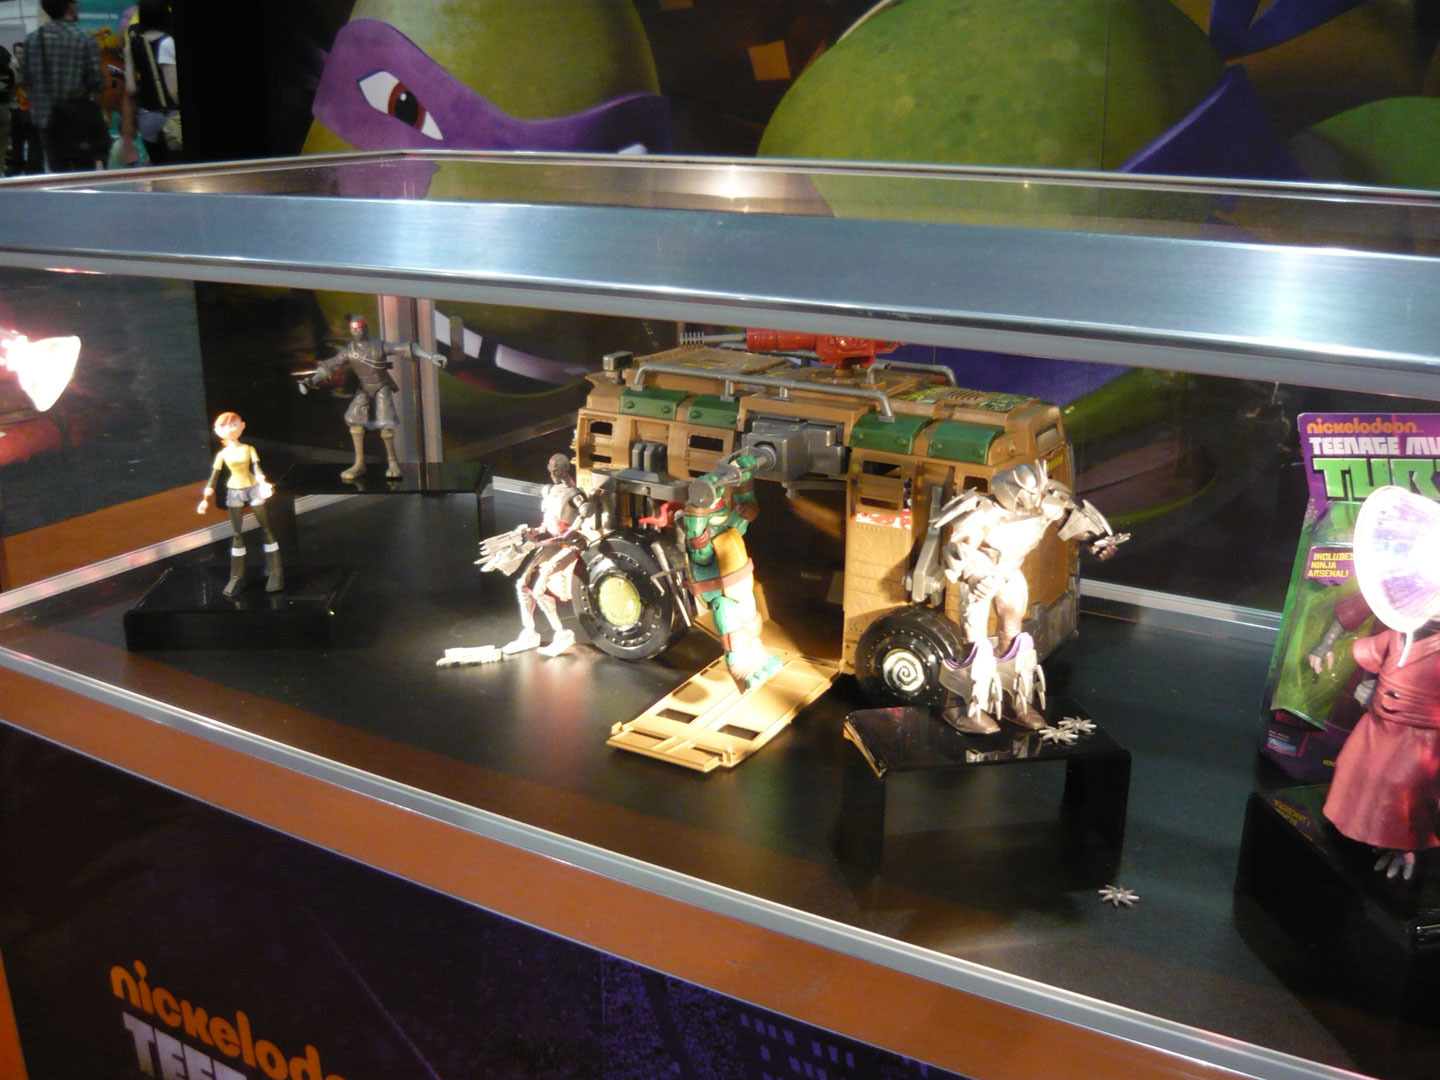 Nickelodeon-Teenage-Mutant-Ninja-Turtles-Booth-At-London-UKs-MCM-Expo-London-Comic-Con-2012-Animation-CGI-TMNT-Animation-Animated-Display-Action-Fiqures-TMNTToys3